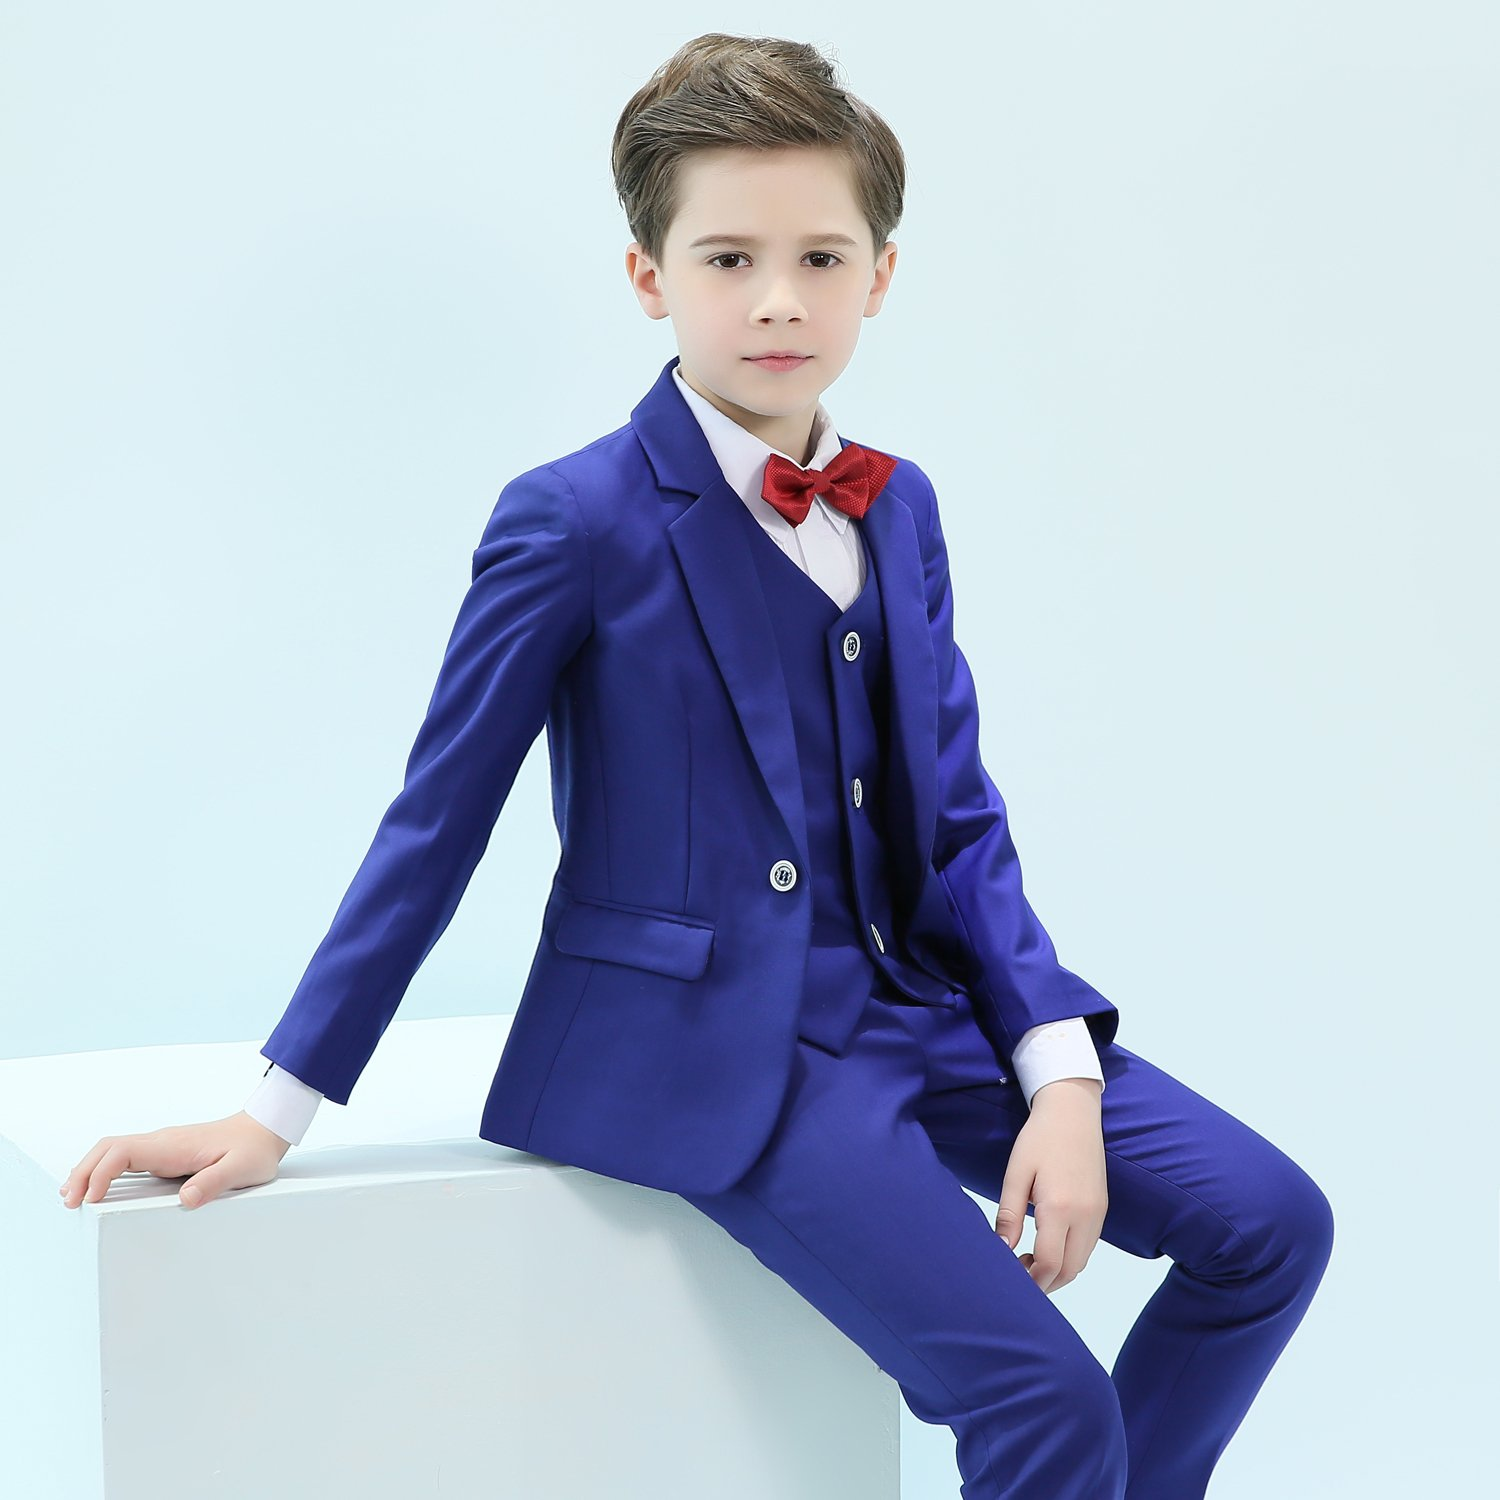 ac558dcc3 Iyan Boys One Button Blue Suits 5 Piece Slim Fit Suit for Boys CA ...